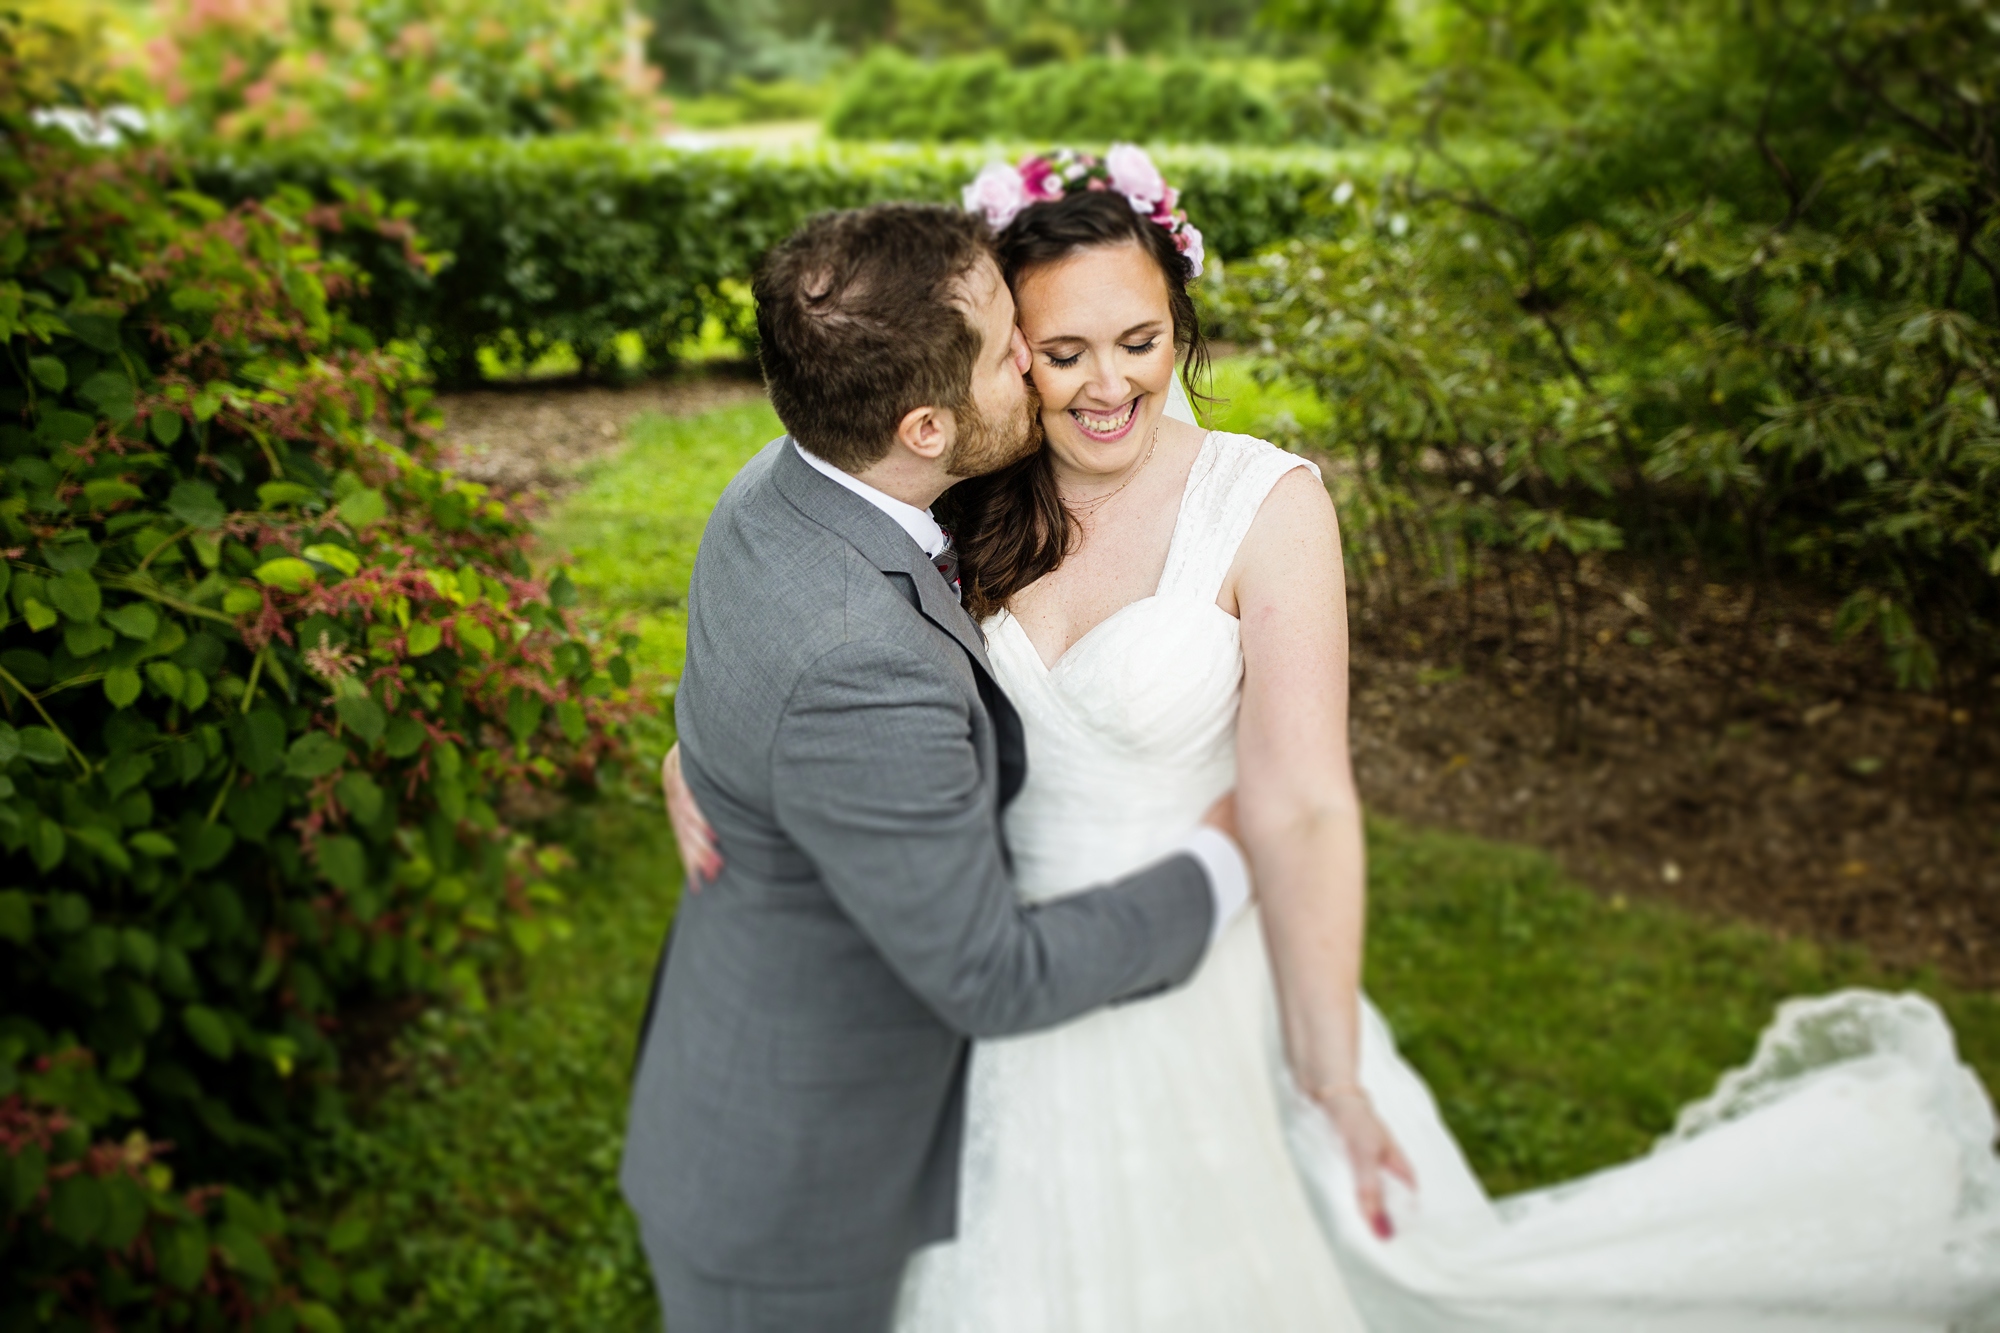 Seriously_Sabrina_Photography_Lisle_Illinois_Morton_Arboretum_Wedding_Day_Gowen92.jpg